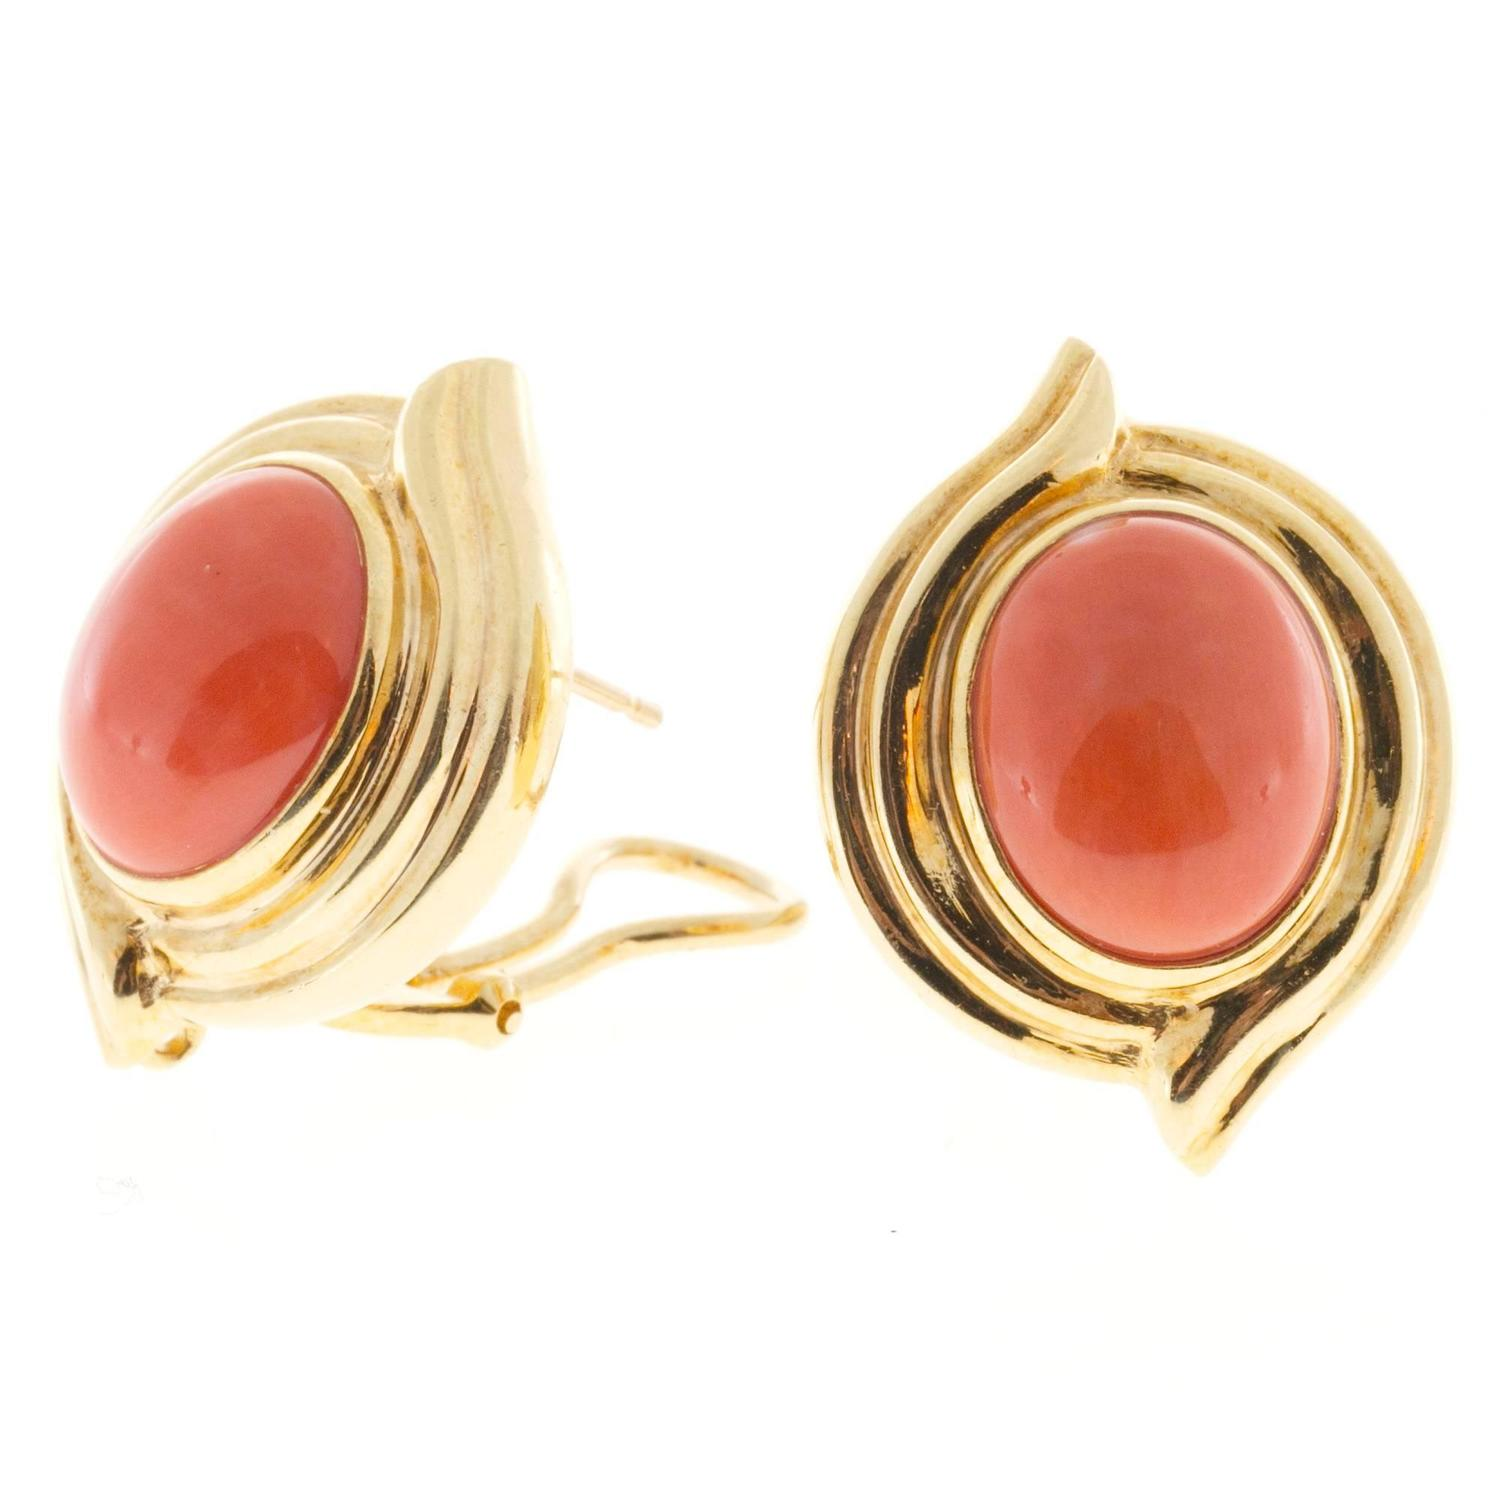 Red Orange Oval Coral Gold Earrings For Sale at 1stdibs